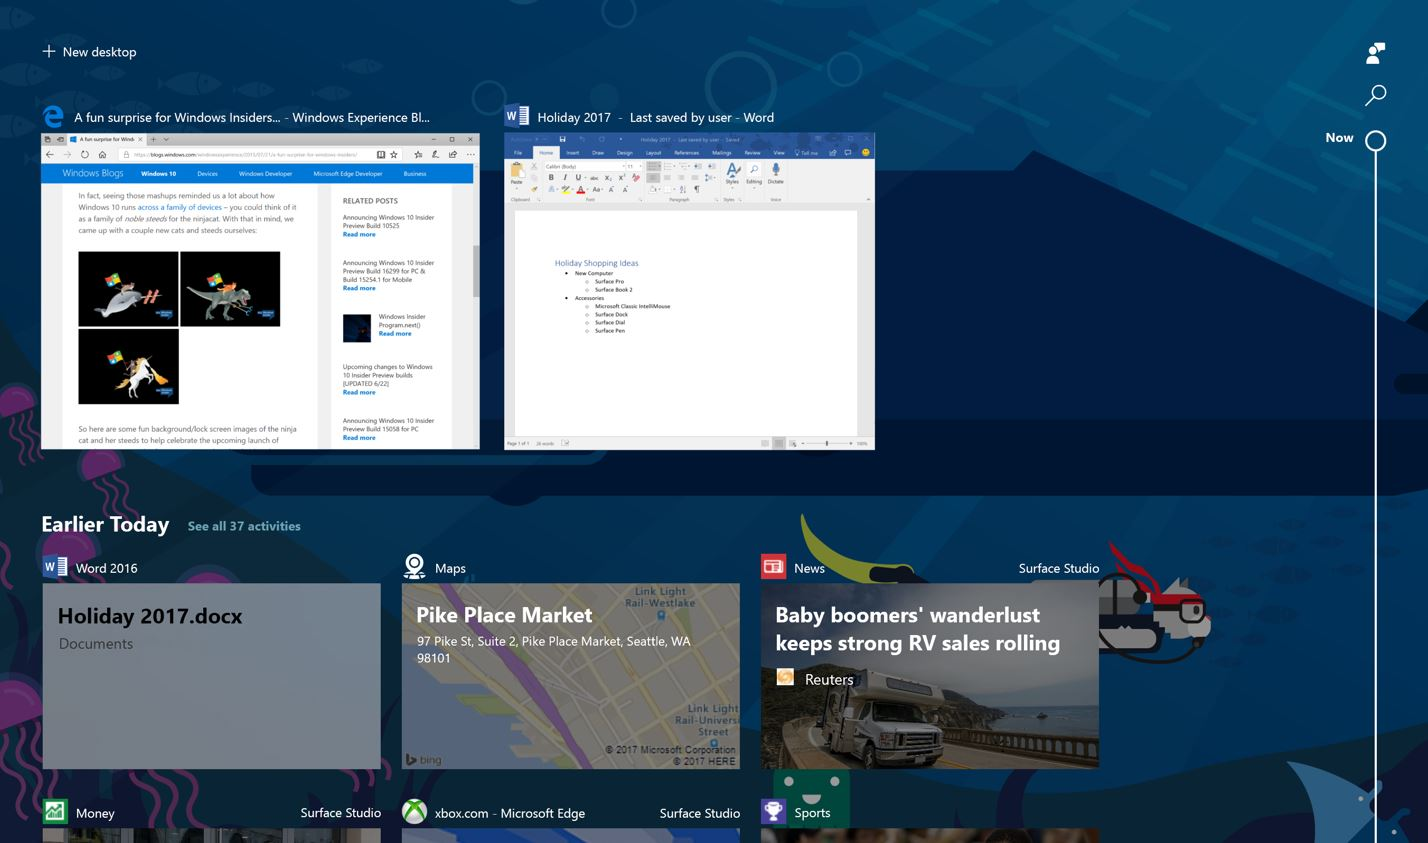 Microsoft releases Windows 10 Build 17063 with Timeline, Cortana Improvements and more 1